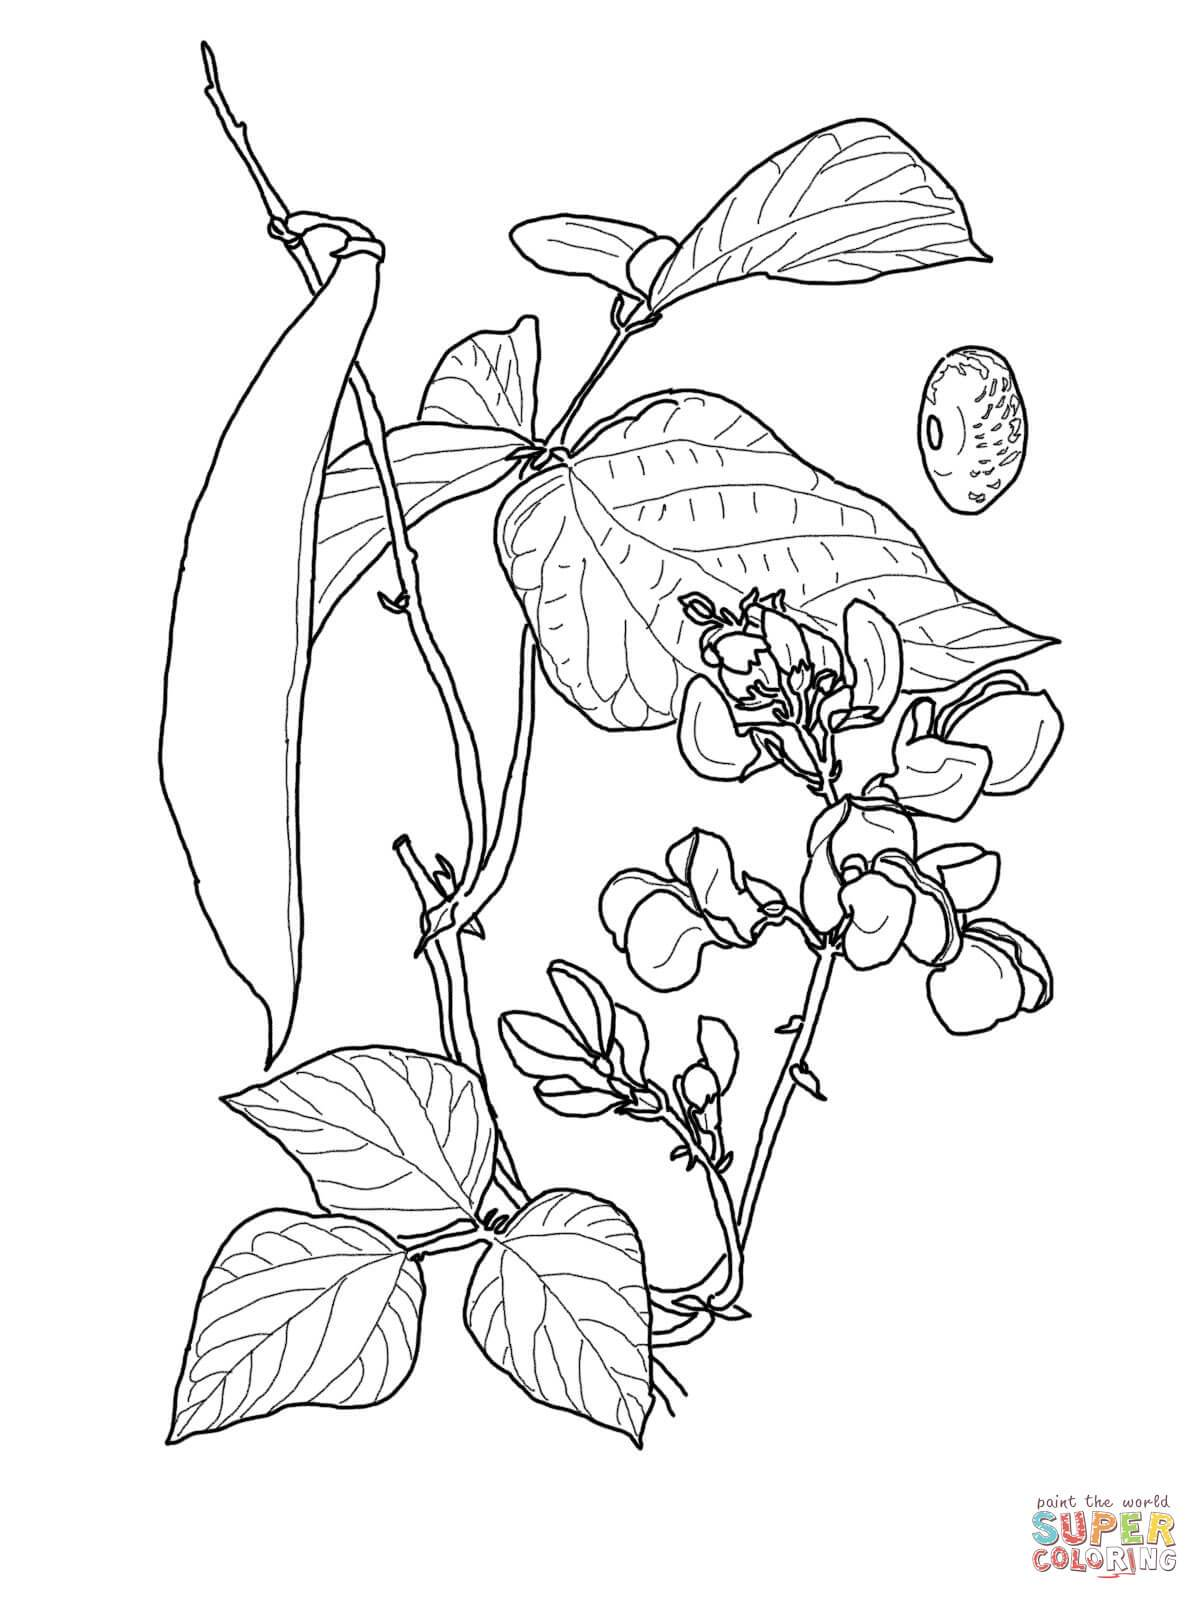 1200x1600 Inspiring Sprout Online Coloring Pages Pics For Solar System